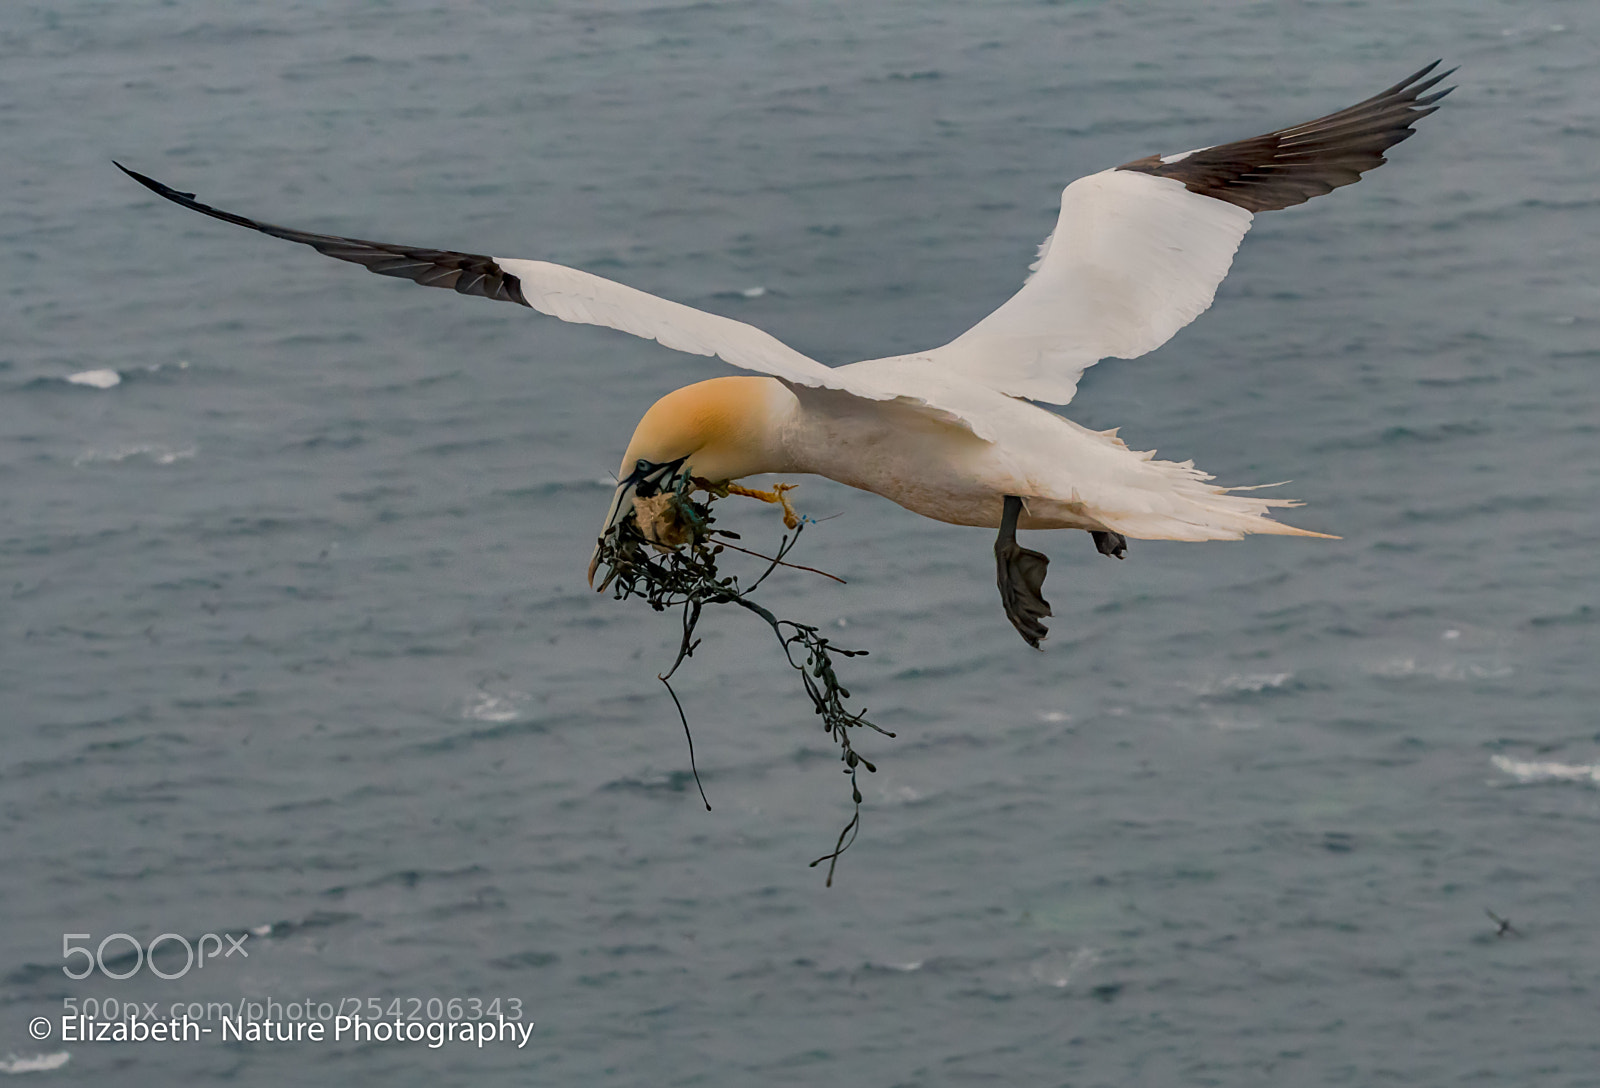 Northern gannet with nesting, Nikon D500, Sigma Macro 105mm F2.8 EX DG OS HSM